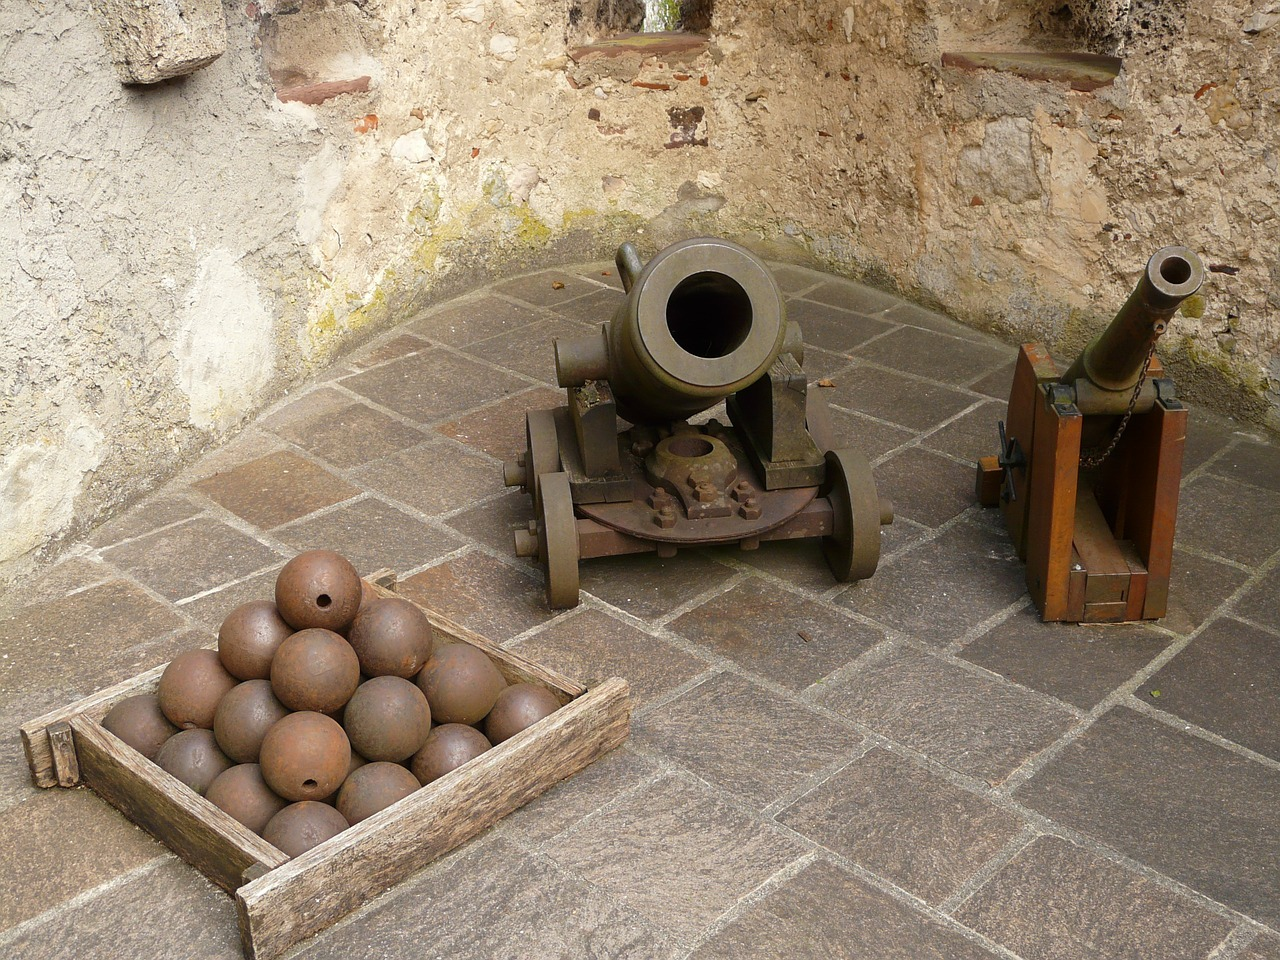 gun cannonball mortar free photo